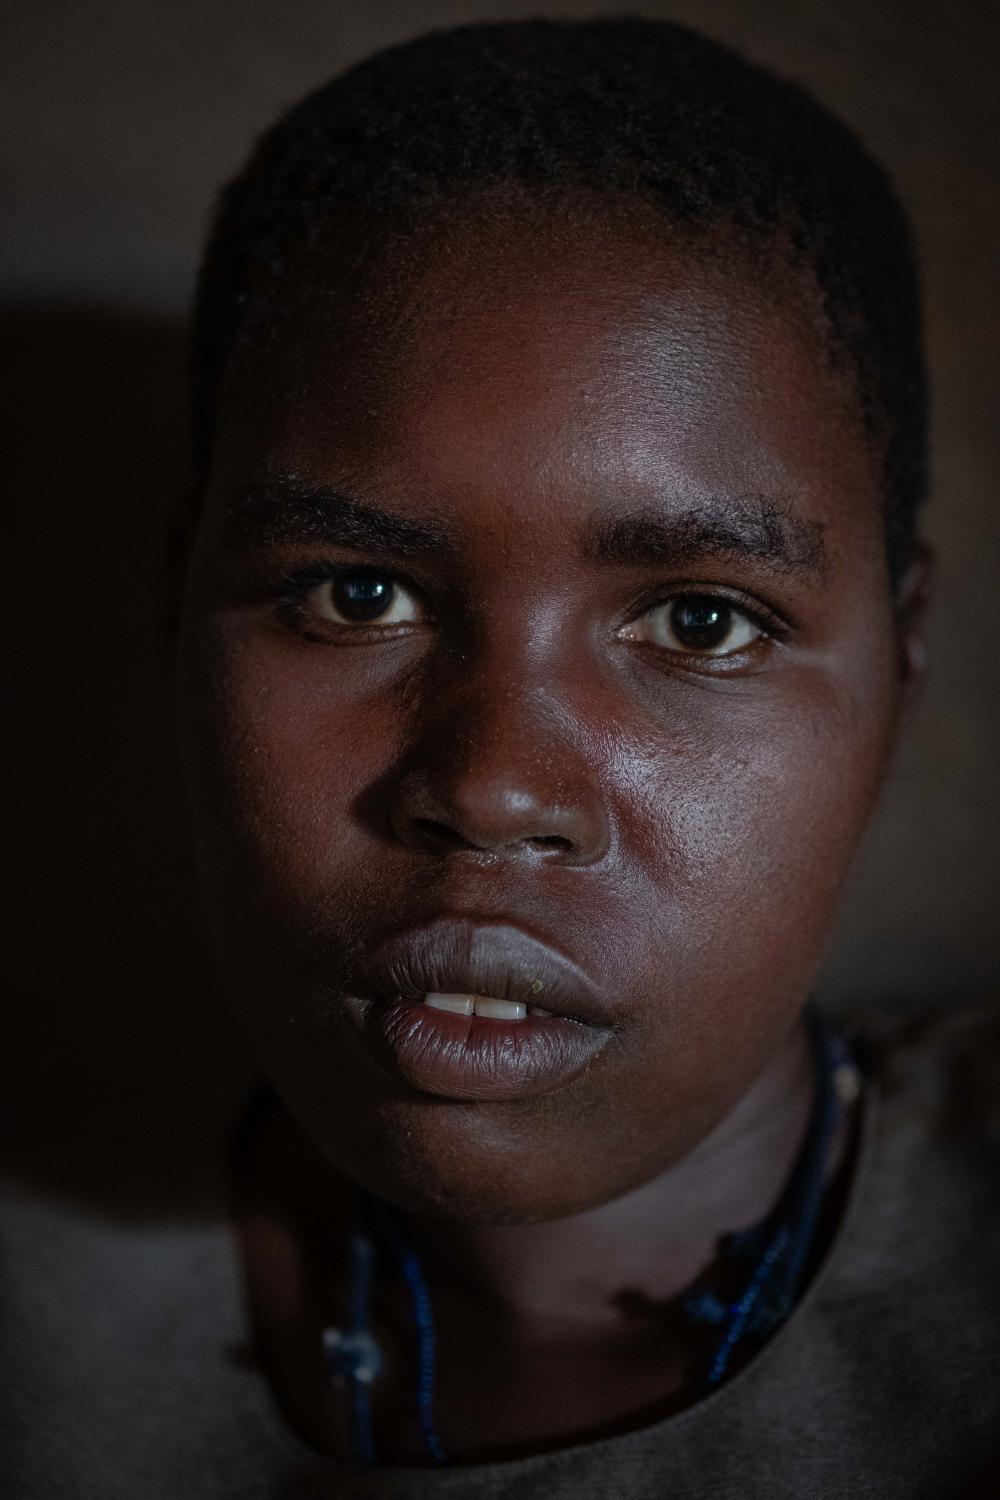 Anyeko Vicky, 16, has been suffering the disease for 11 years now. Her situation is very delicate as she gets very violent seizures If she misses a single dose of the anti-convulsants.